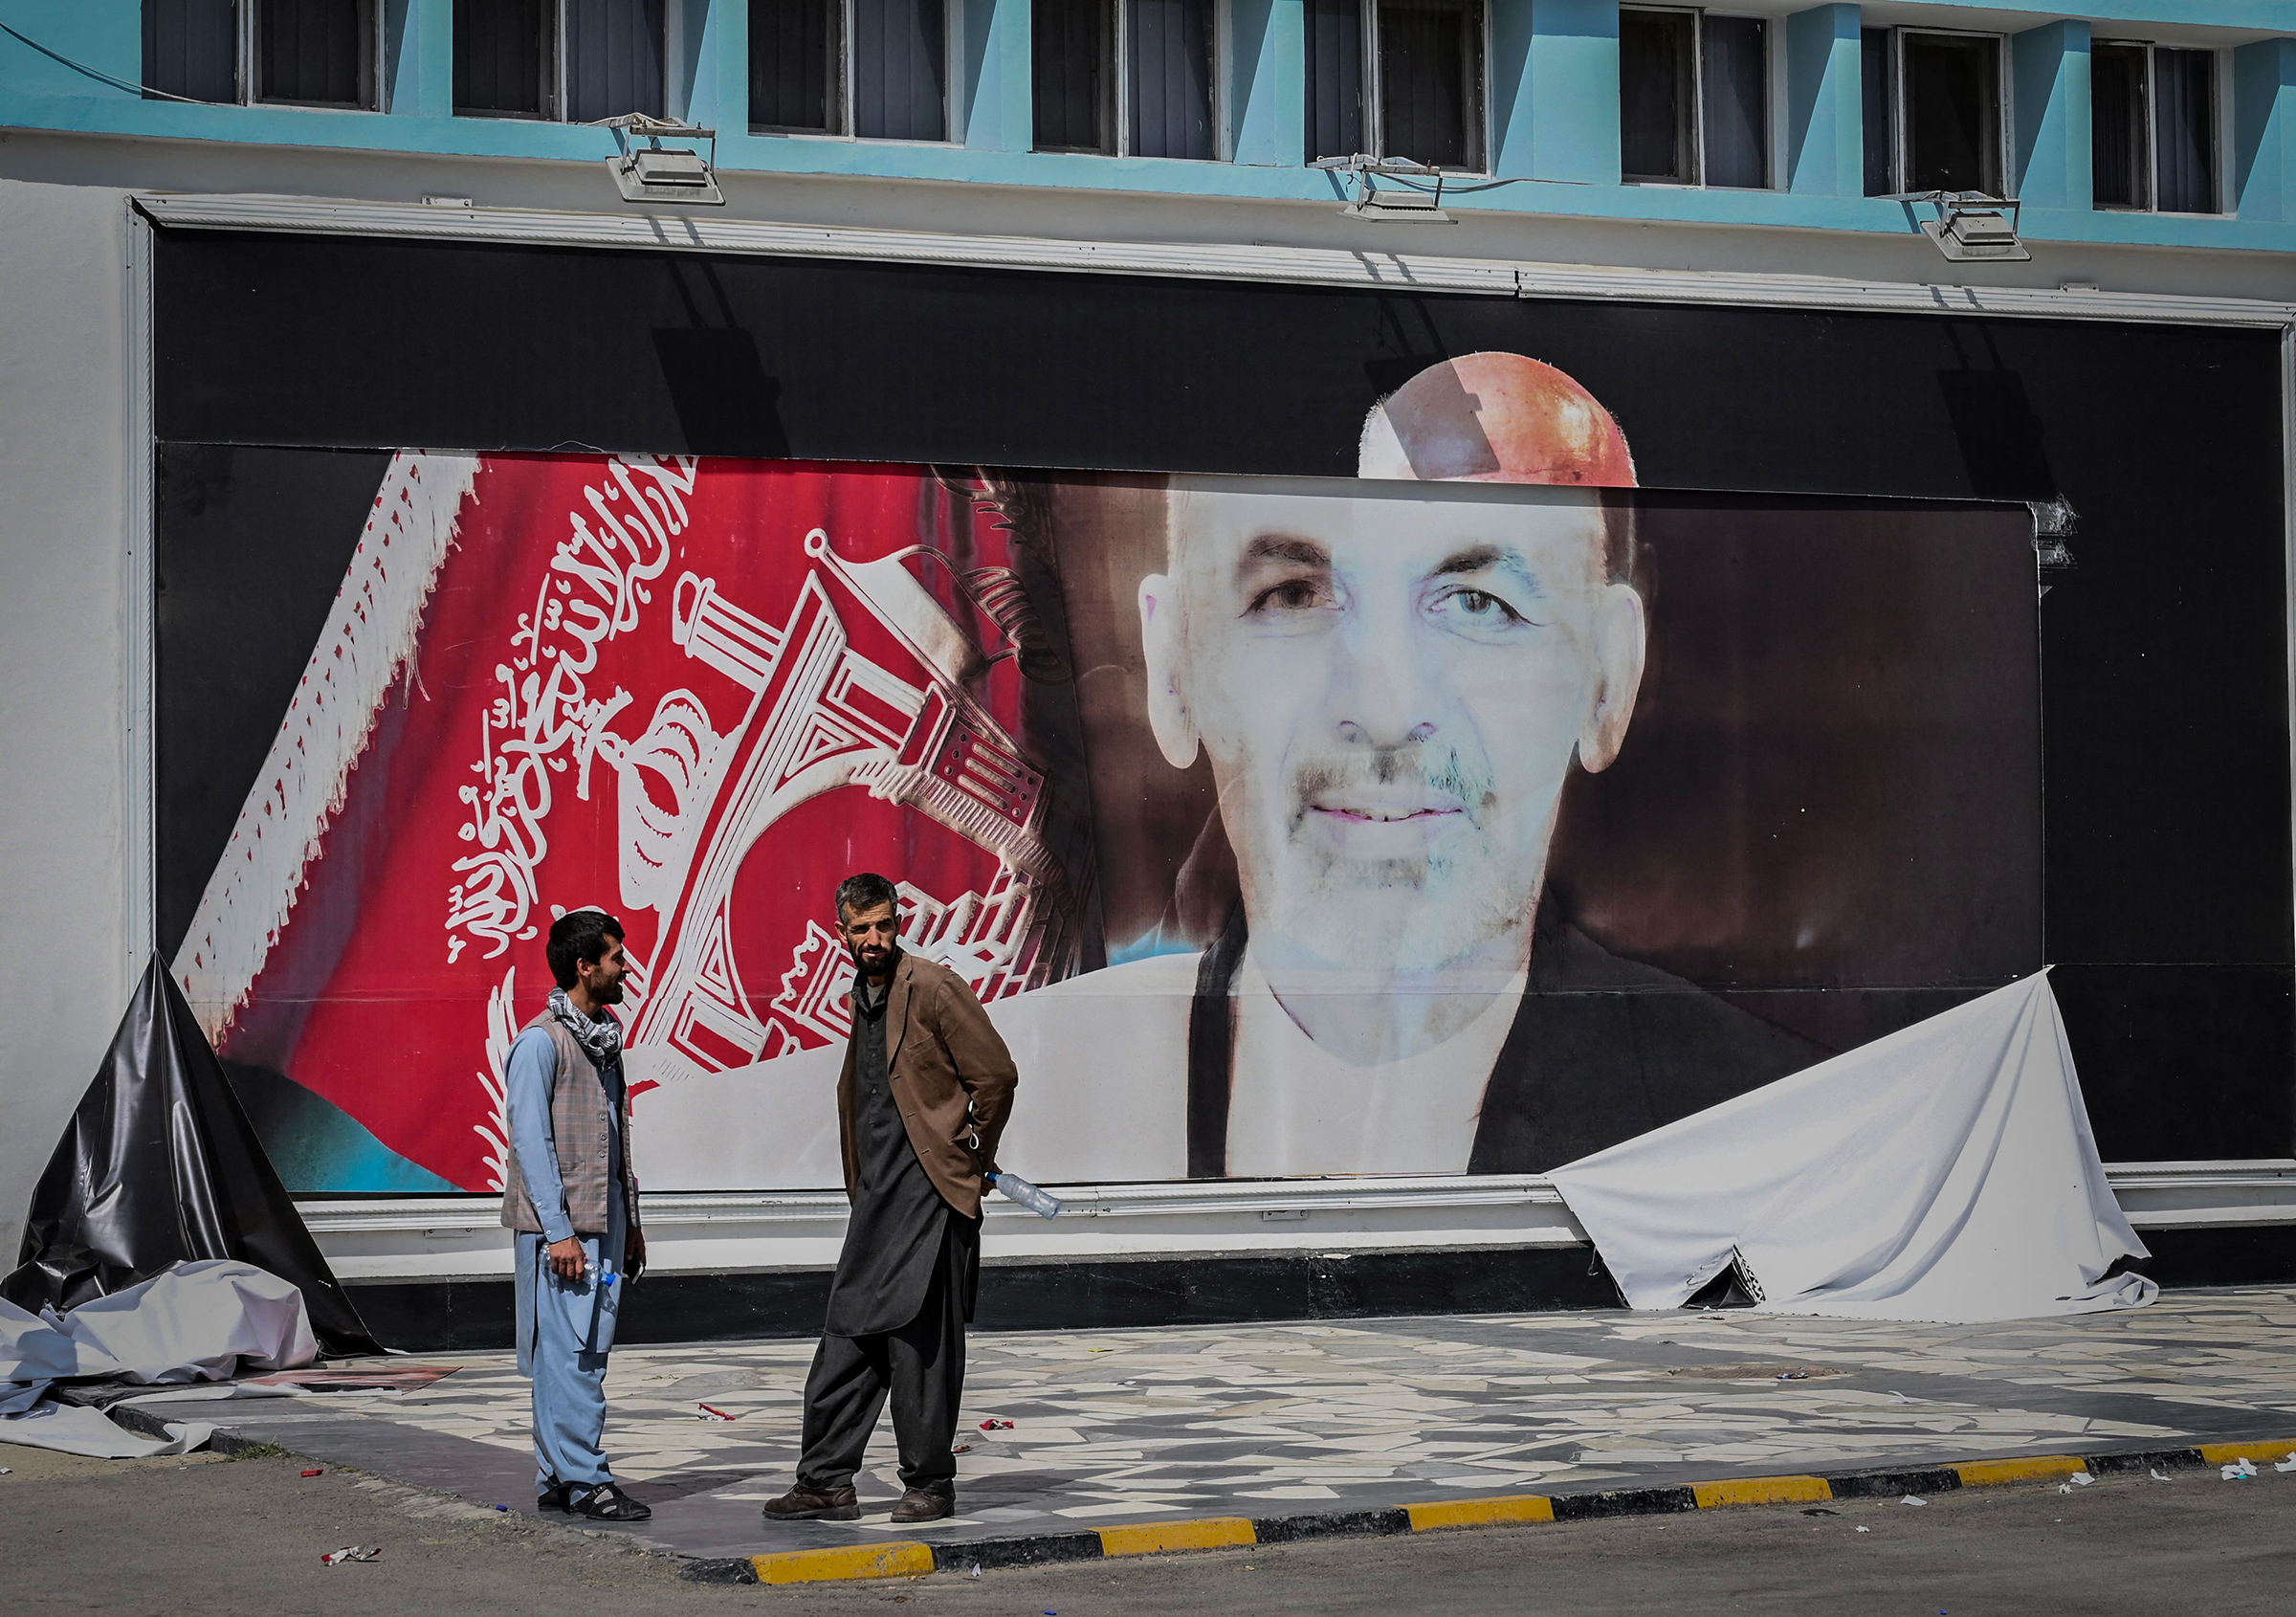 Men stand next to a torn poster of Afghan President Ashraf Ghani at the Kabul airport on Aug. 16, the day after Ghani fled the country and the Taliban gained control of the presidential palace.